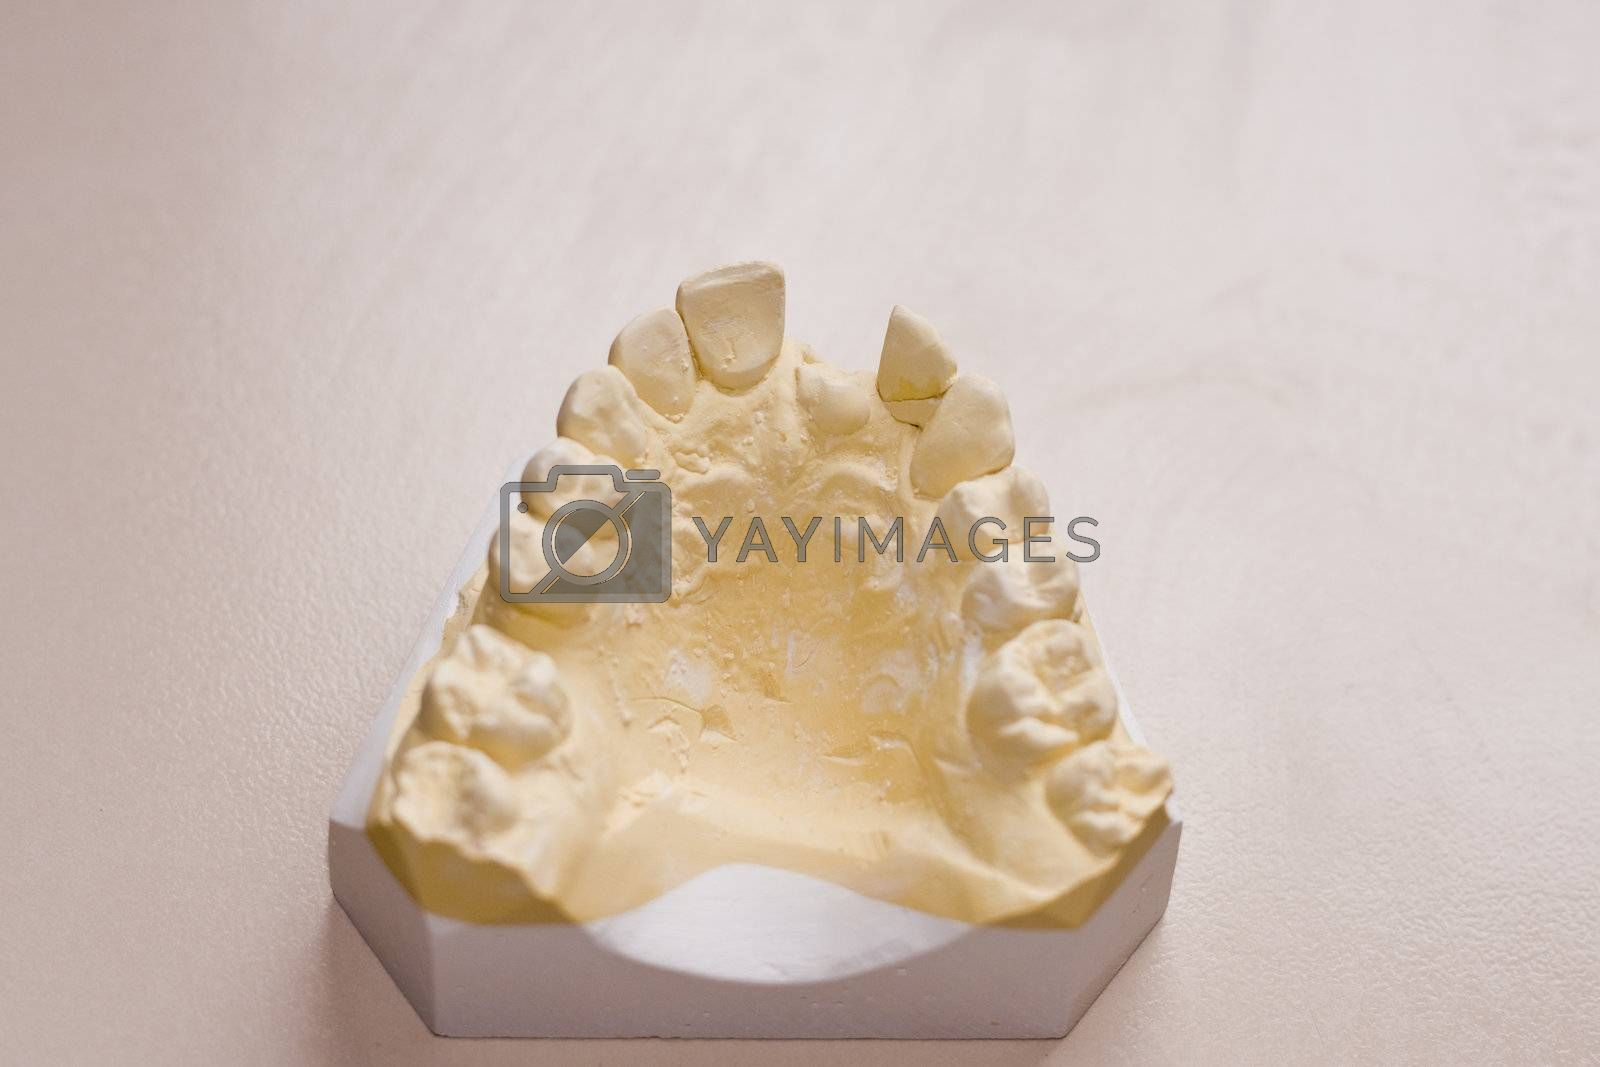 Dental study cast of upper teeth with damaged incisor